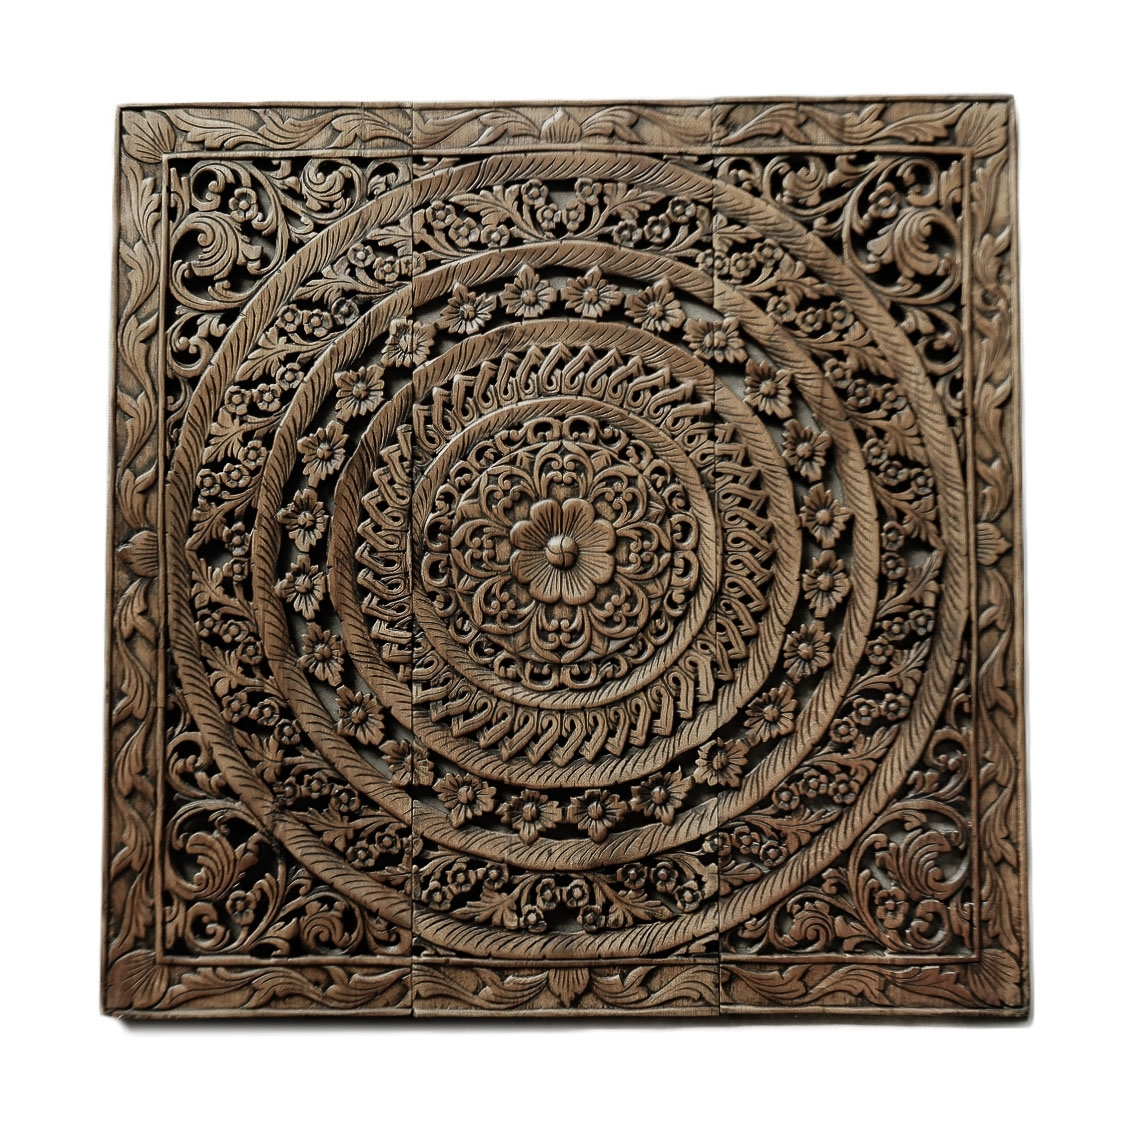 Moroccan Wood Wall Art – Elitflat With Regard To Most Current Moroccan Wall Art (View 16 of 20)